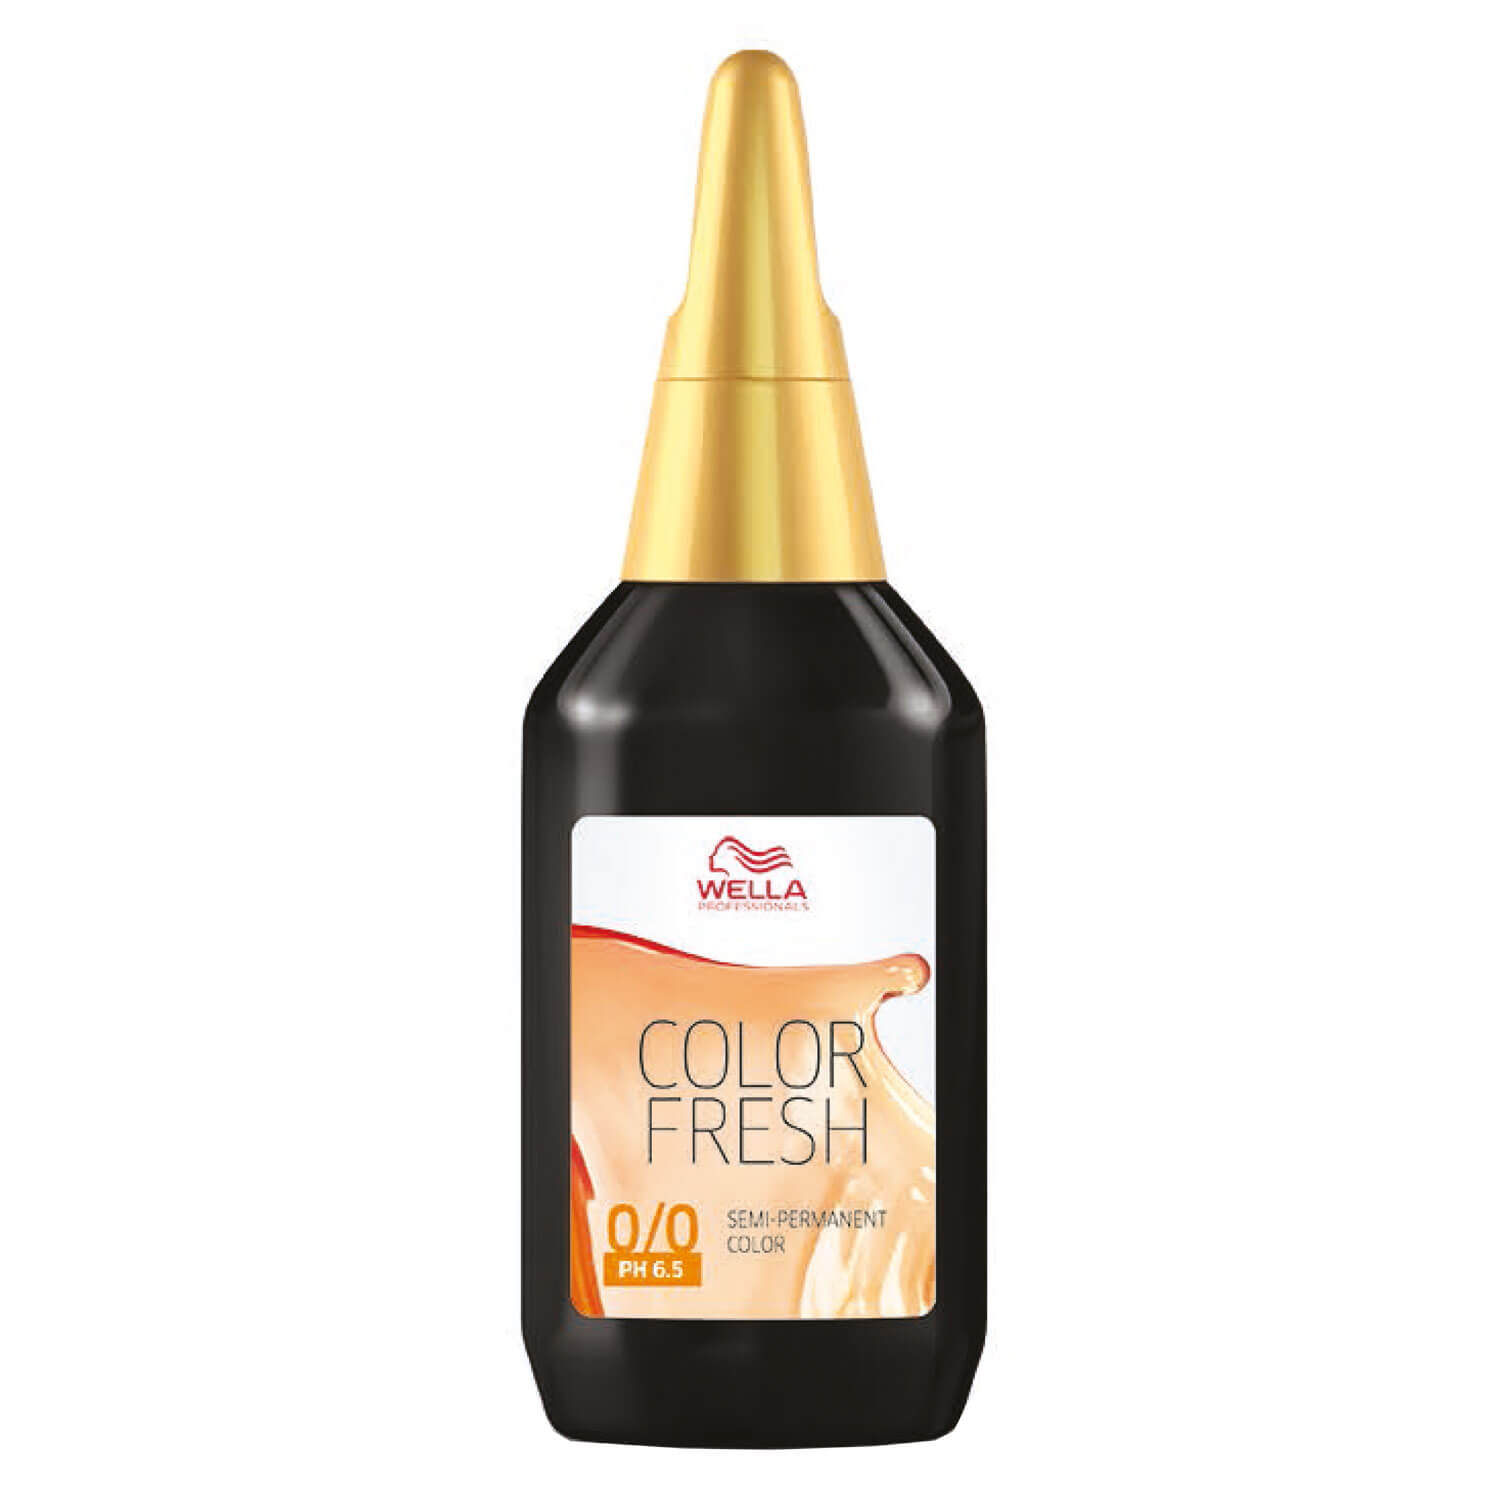 Color Fresh - 10/36 hell-lichtblond/gold-violett